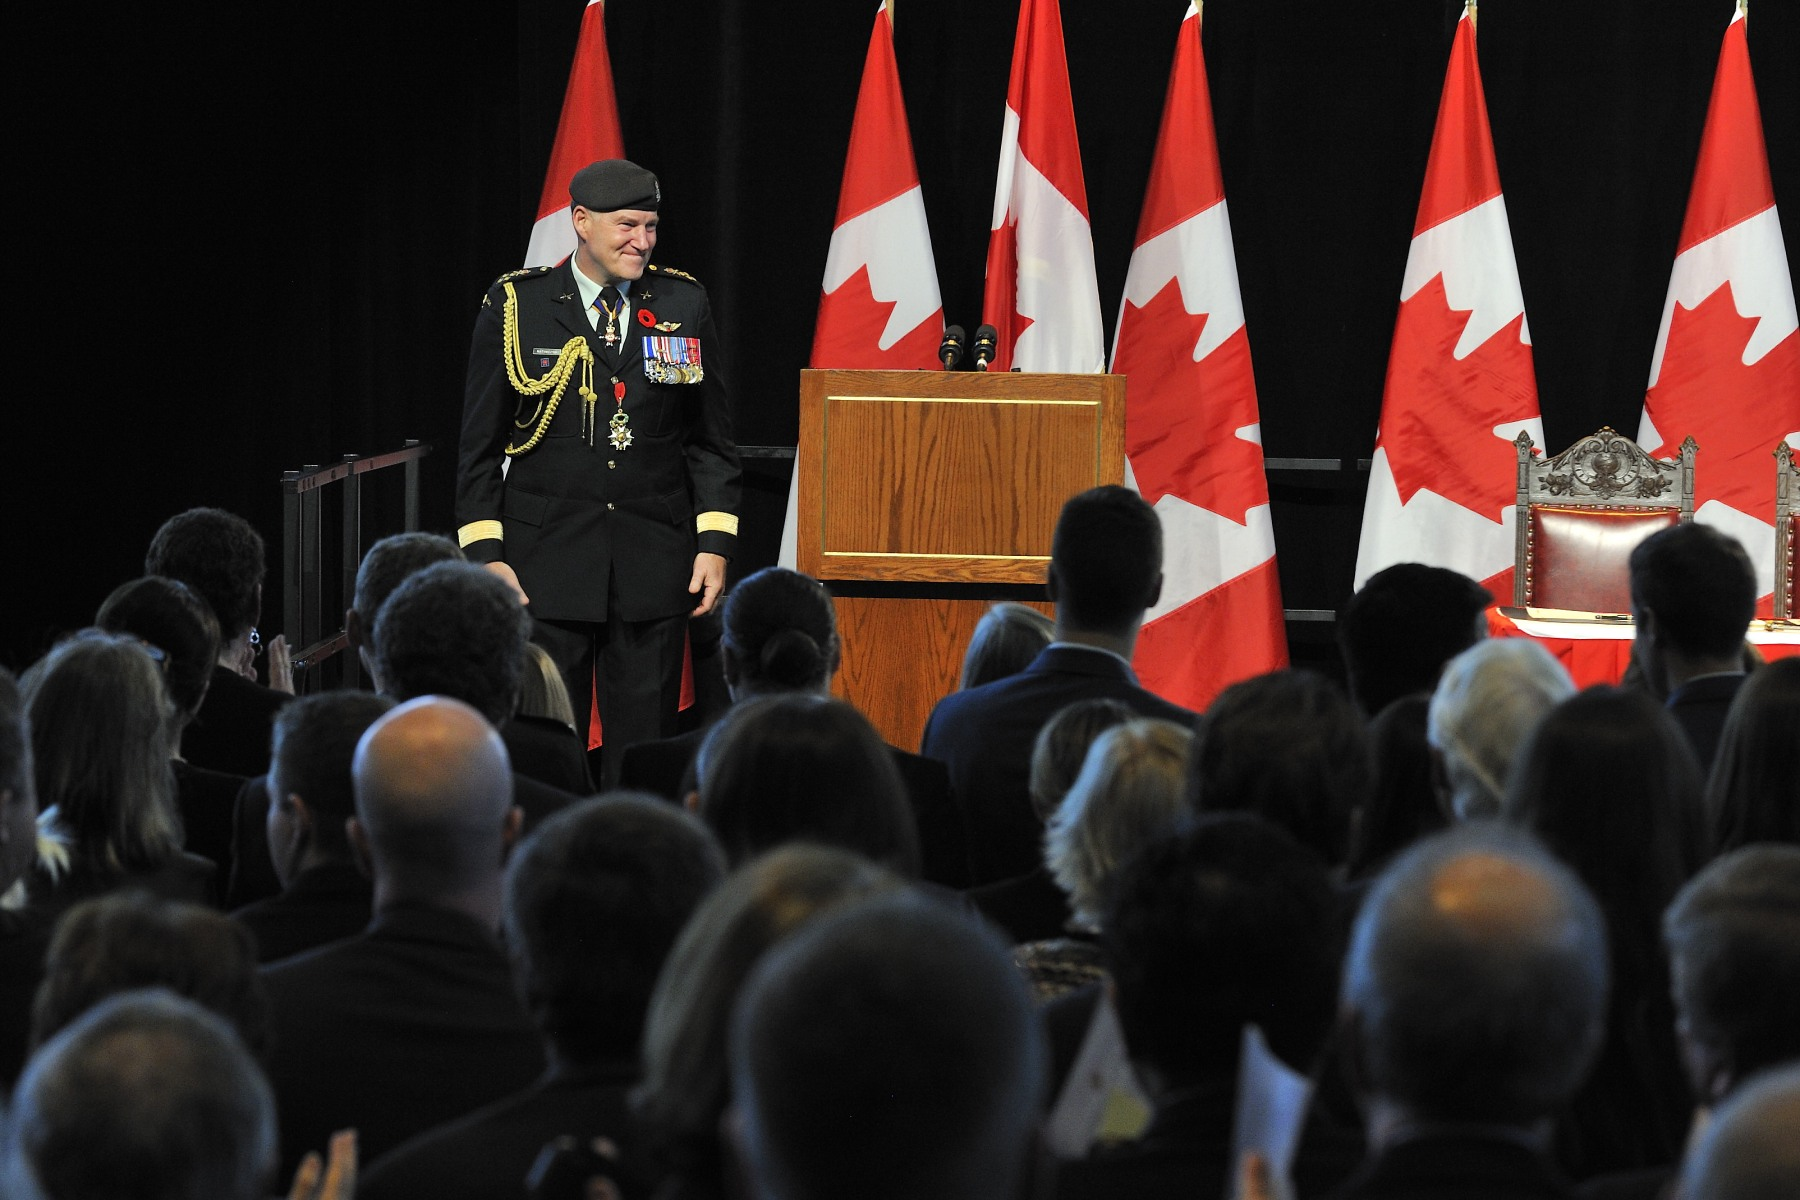 Following his speech, former Chief of the Defence Staff Standing General Walt Natynczyk received a standing ovation.